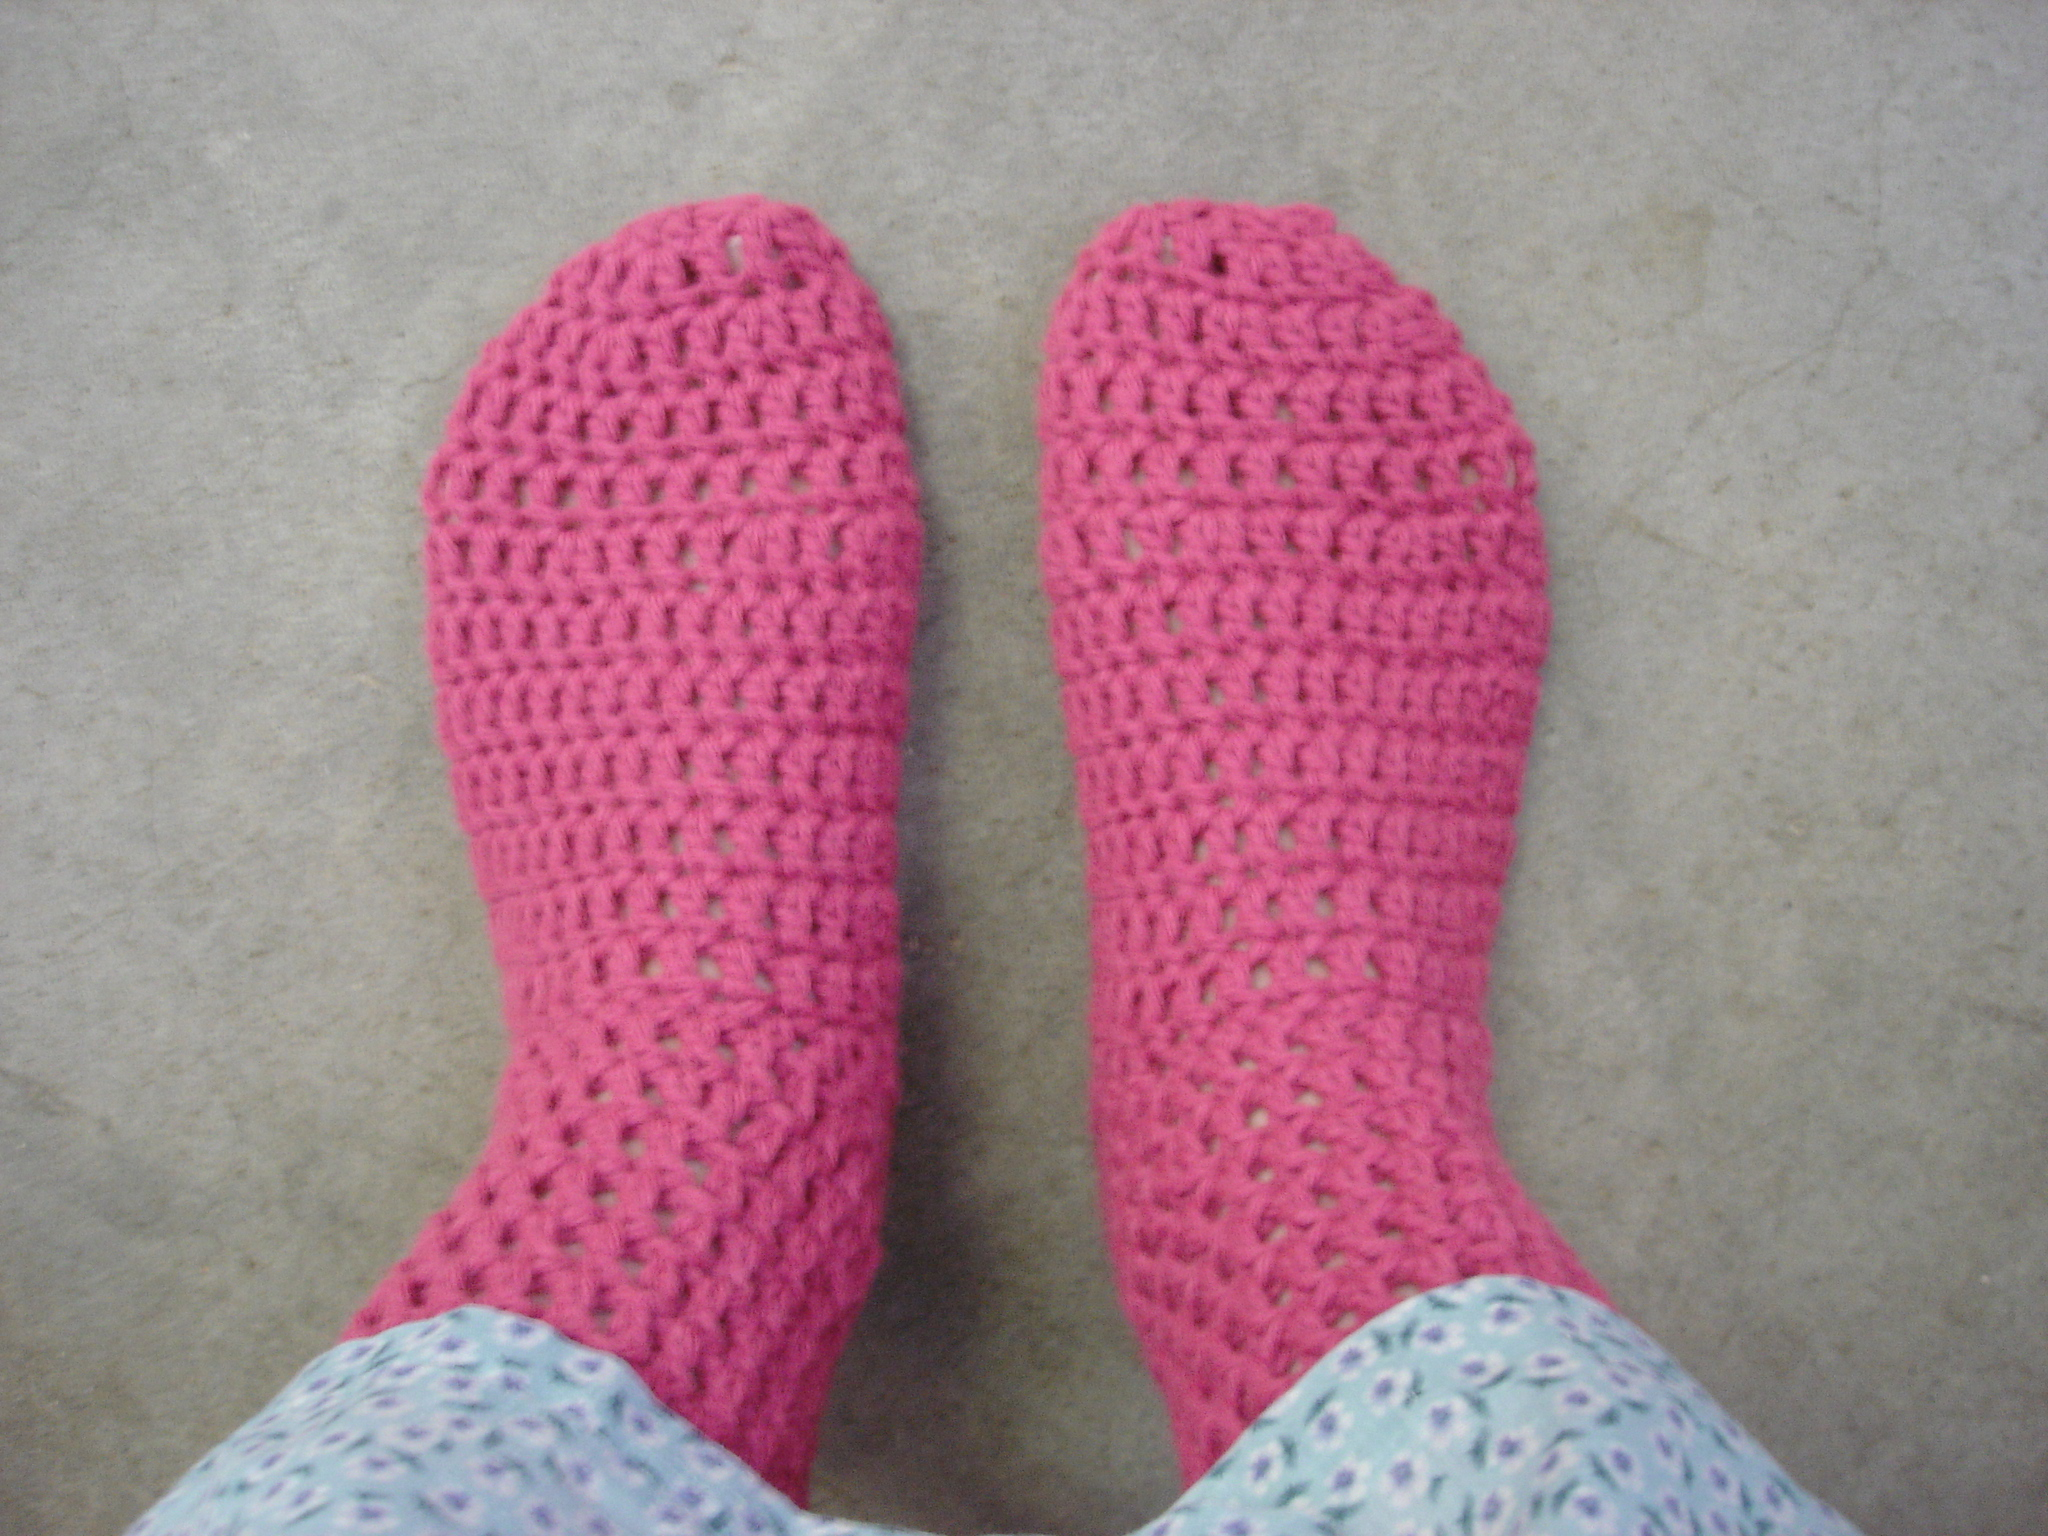 Easy Tube Sock Pattern submited images.